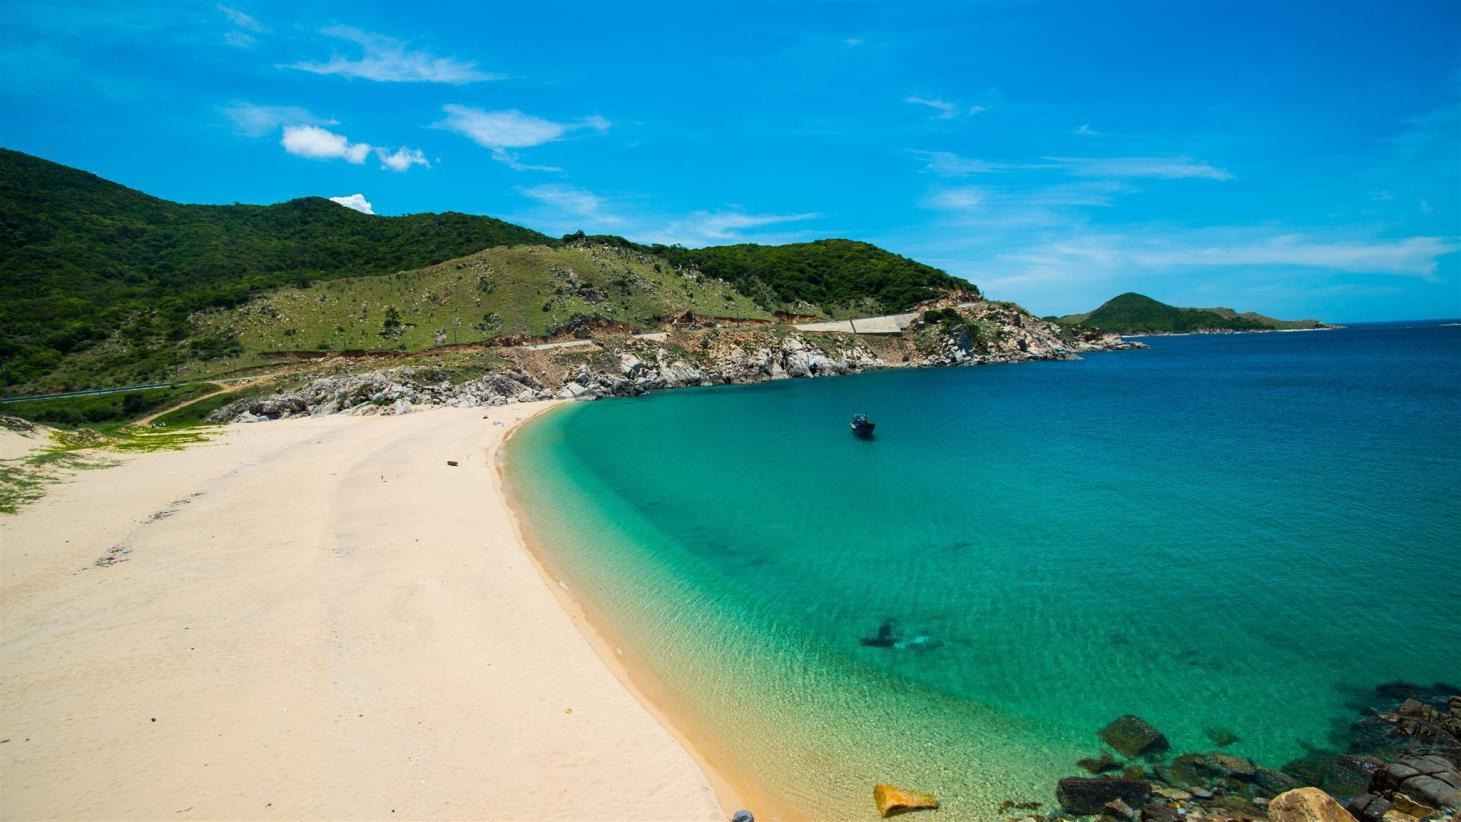 30 Best Ca Na Beach (Ninh Thuan) Hotels in 2020 | Great Savings & Reviews  of Hotels in Ca Na Beach (Ninh Thuan), Vietnam